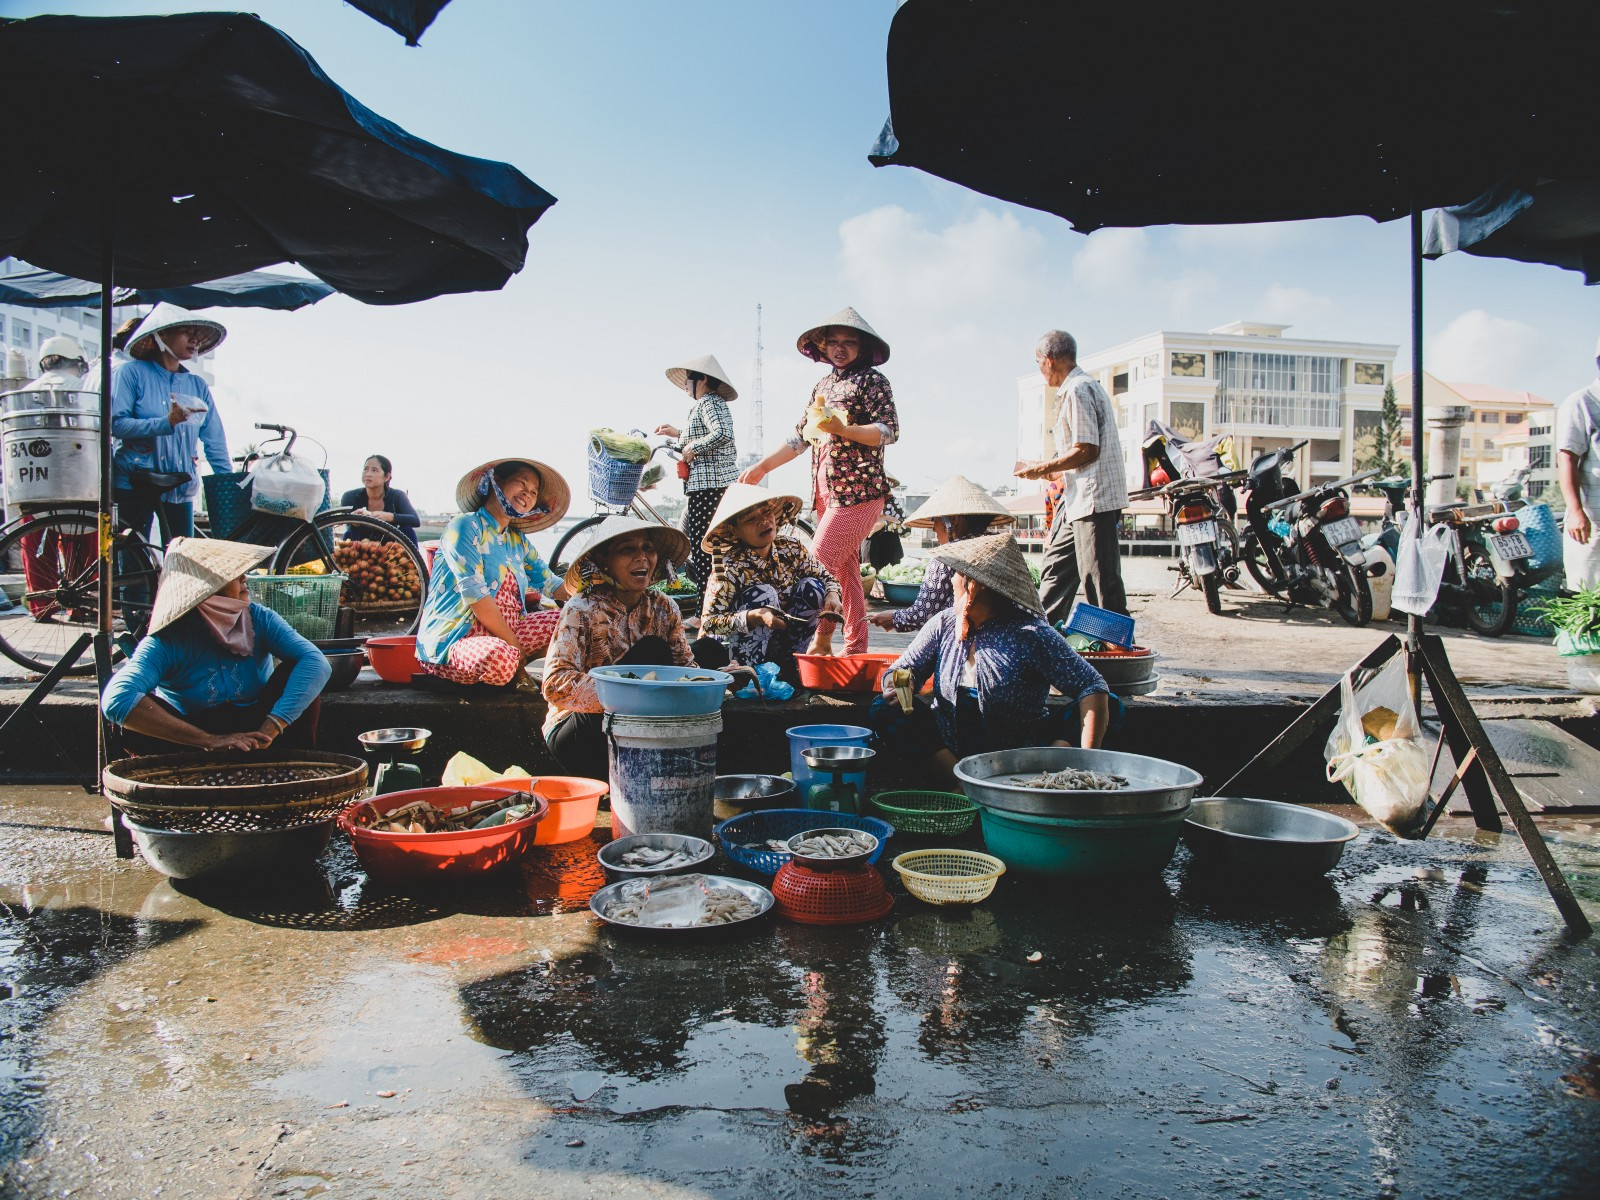 photo essay drought and the mekong delta in photos medium a riverside market in can tho the largest city in vietnam s mekong delta